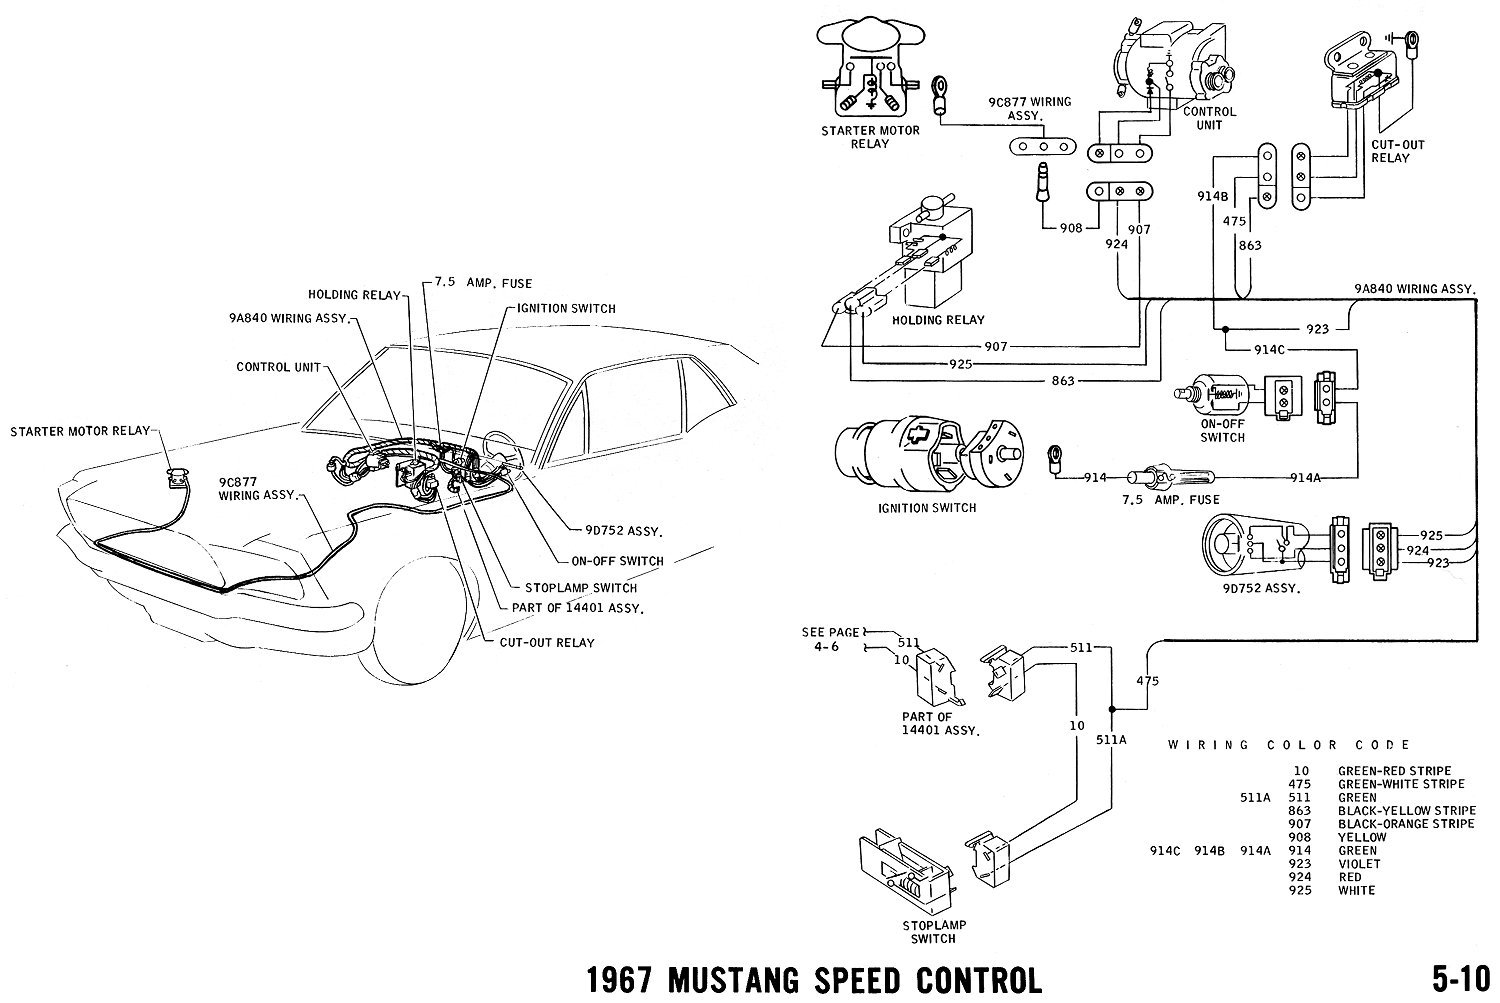 67speed 1967 mustang wiring and vacuum diagrams average joe restoration 68 mustang headlight wiring diagram at edmiracle.co